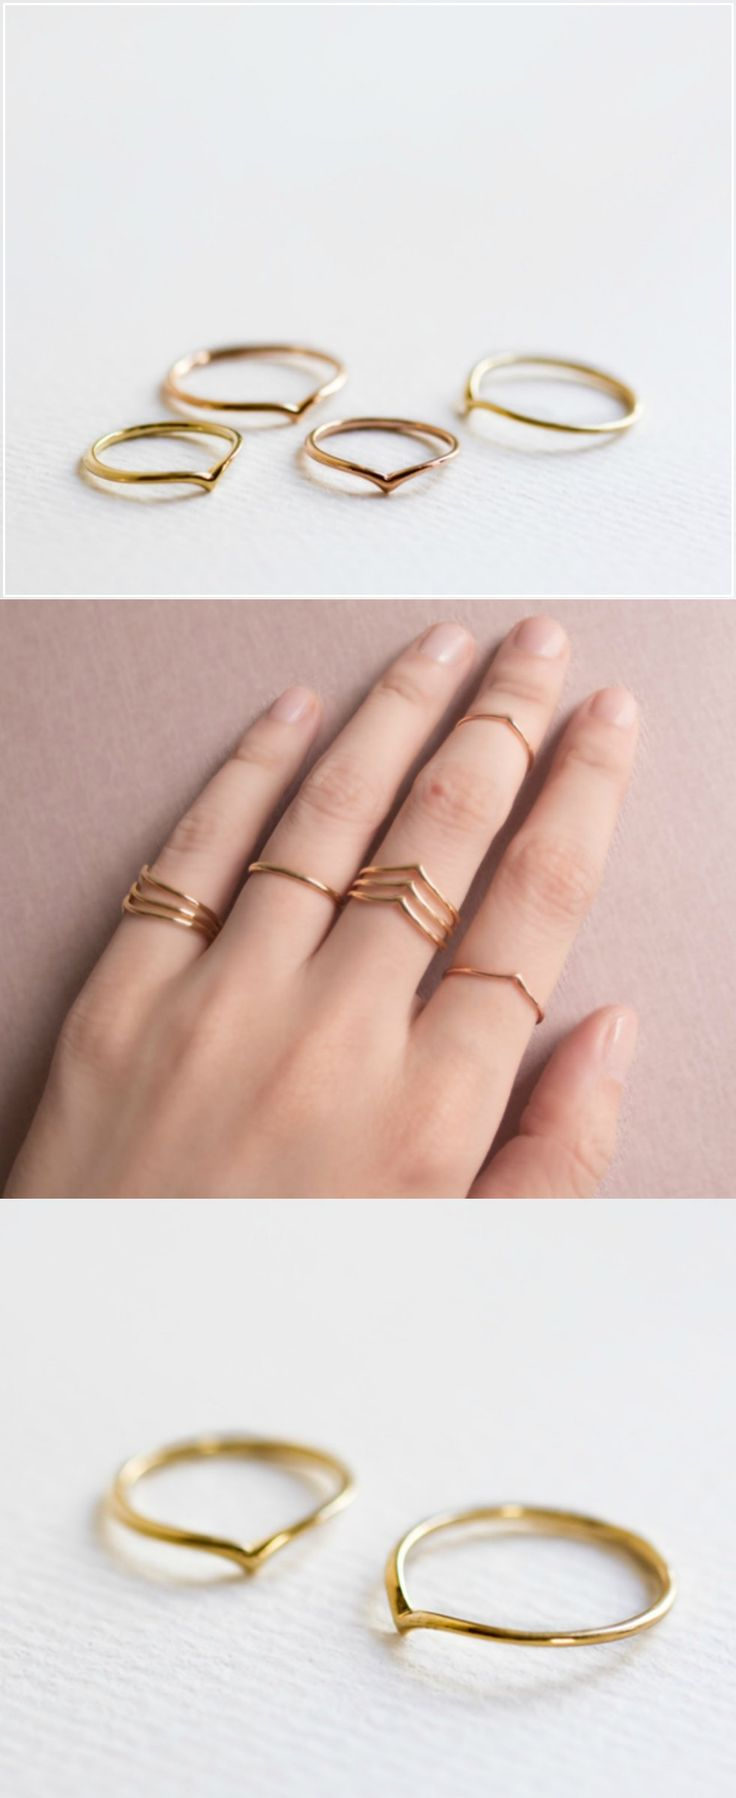 A set of 2 classic chevron rings! One above the knuckle and one below it. The glossy finish gives it a chic and minimal look, minimalistic jewellery, golden - a unique product via en.dawanda.com